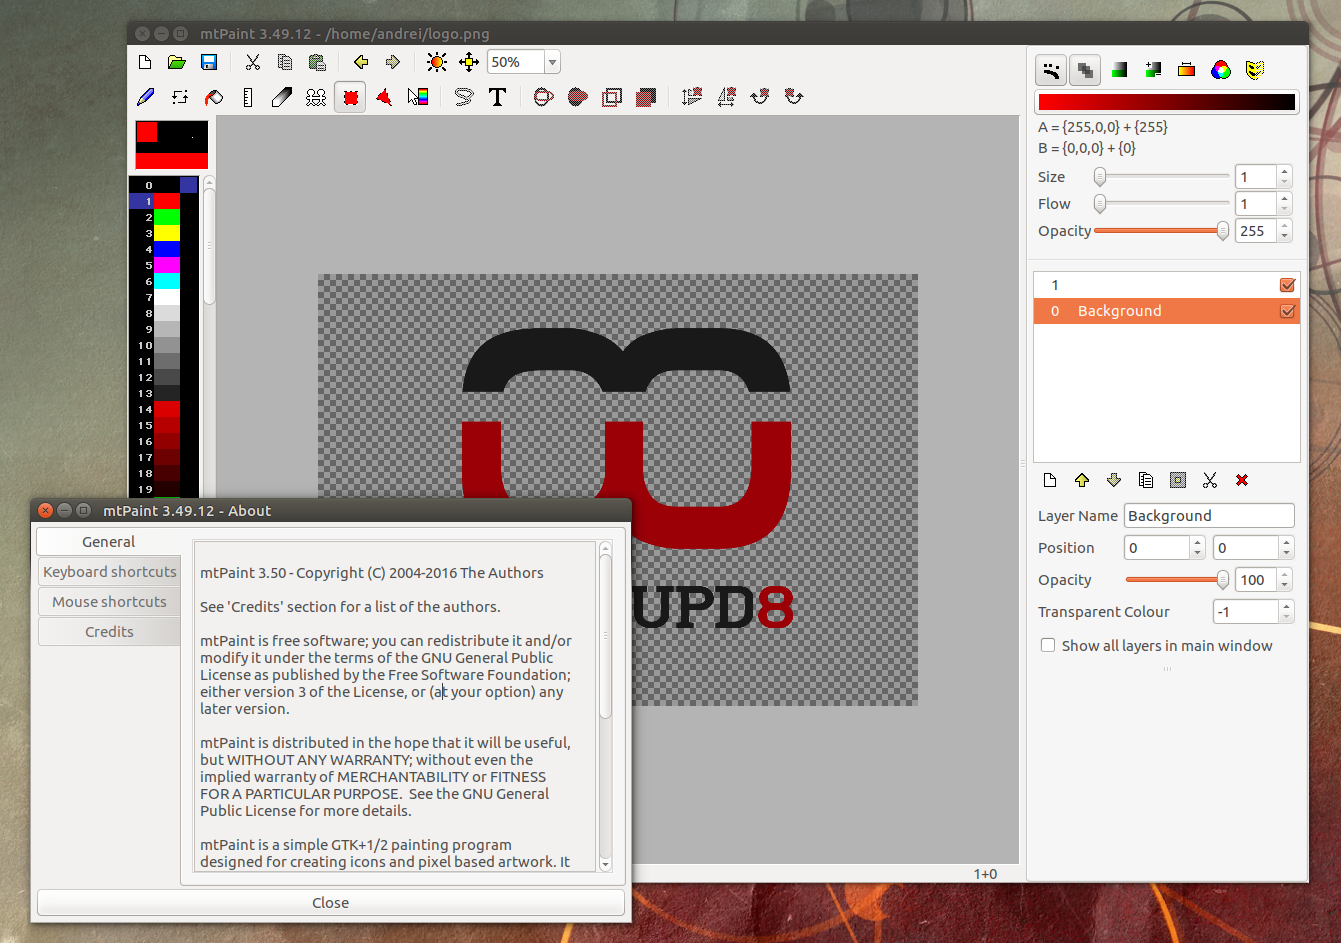 Lightweight Paint Software Mtpaint 3 50 Dev Available In Ppa For Ubuntu Or Linux Mint Web Upd8 Ubuntu Linux Blog